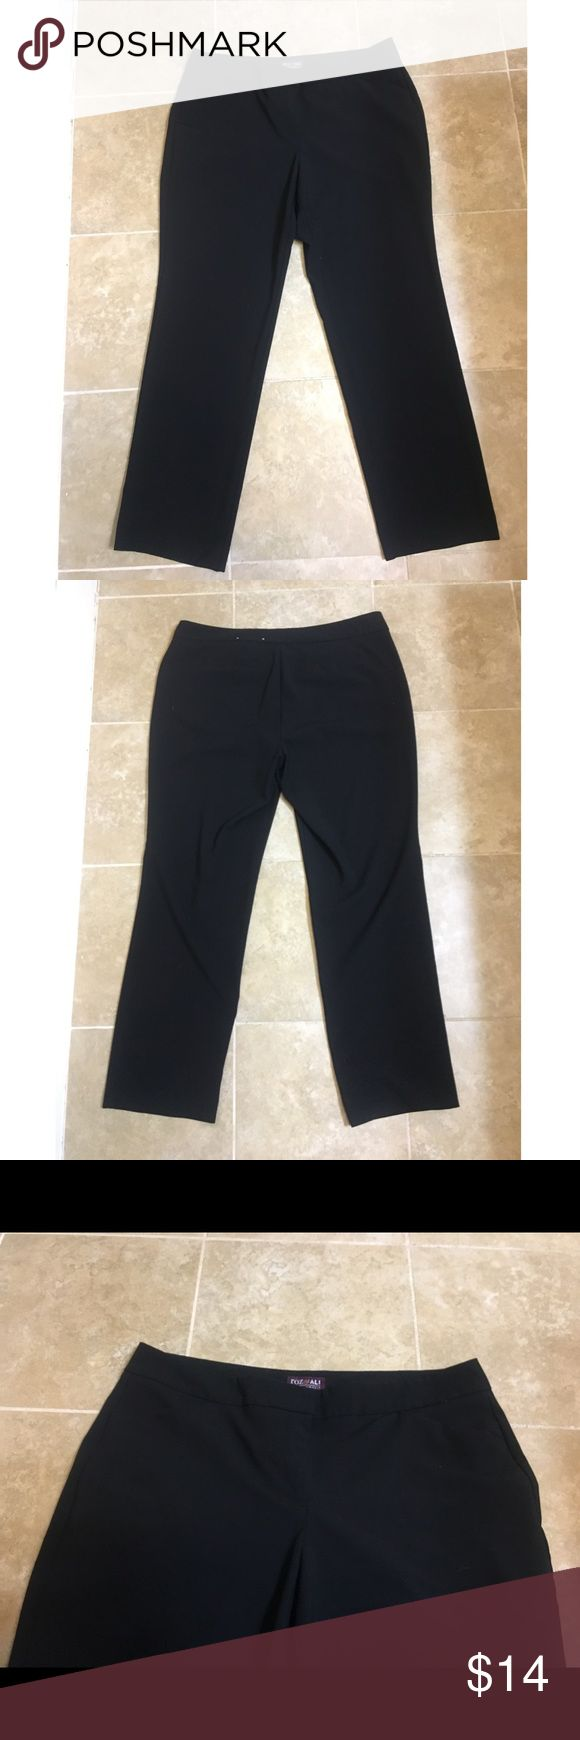 The Smart Fit dress pants Great comfy pair of black dress pants! Zippers up and has clasps. 😊 Roz & Ali Pants